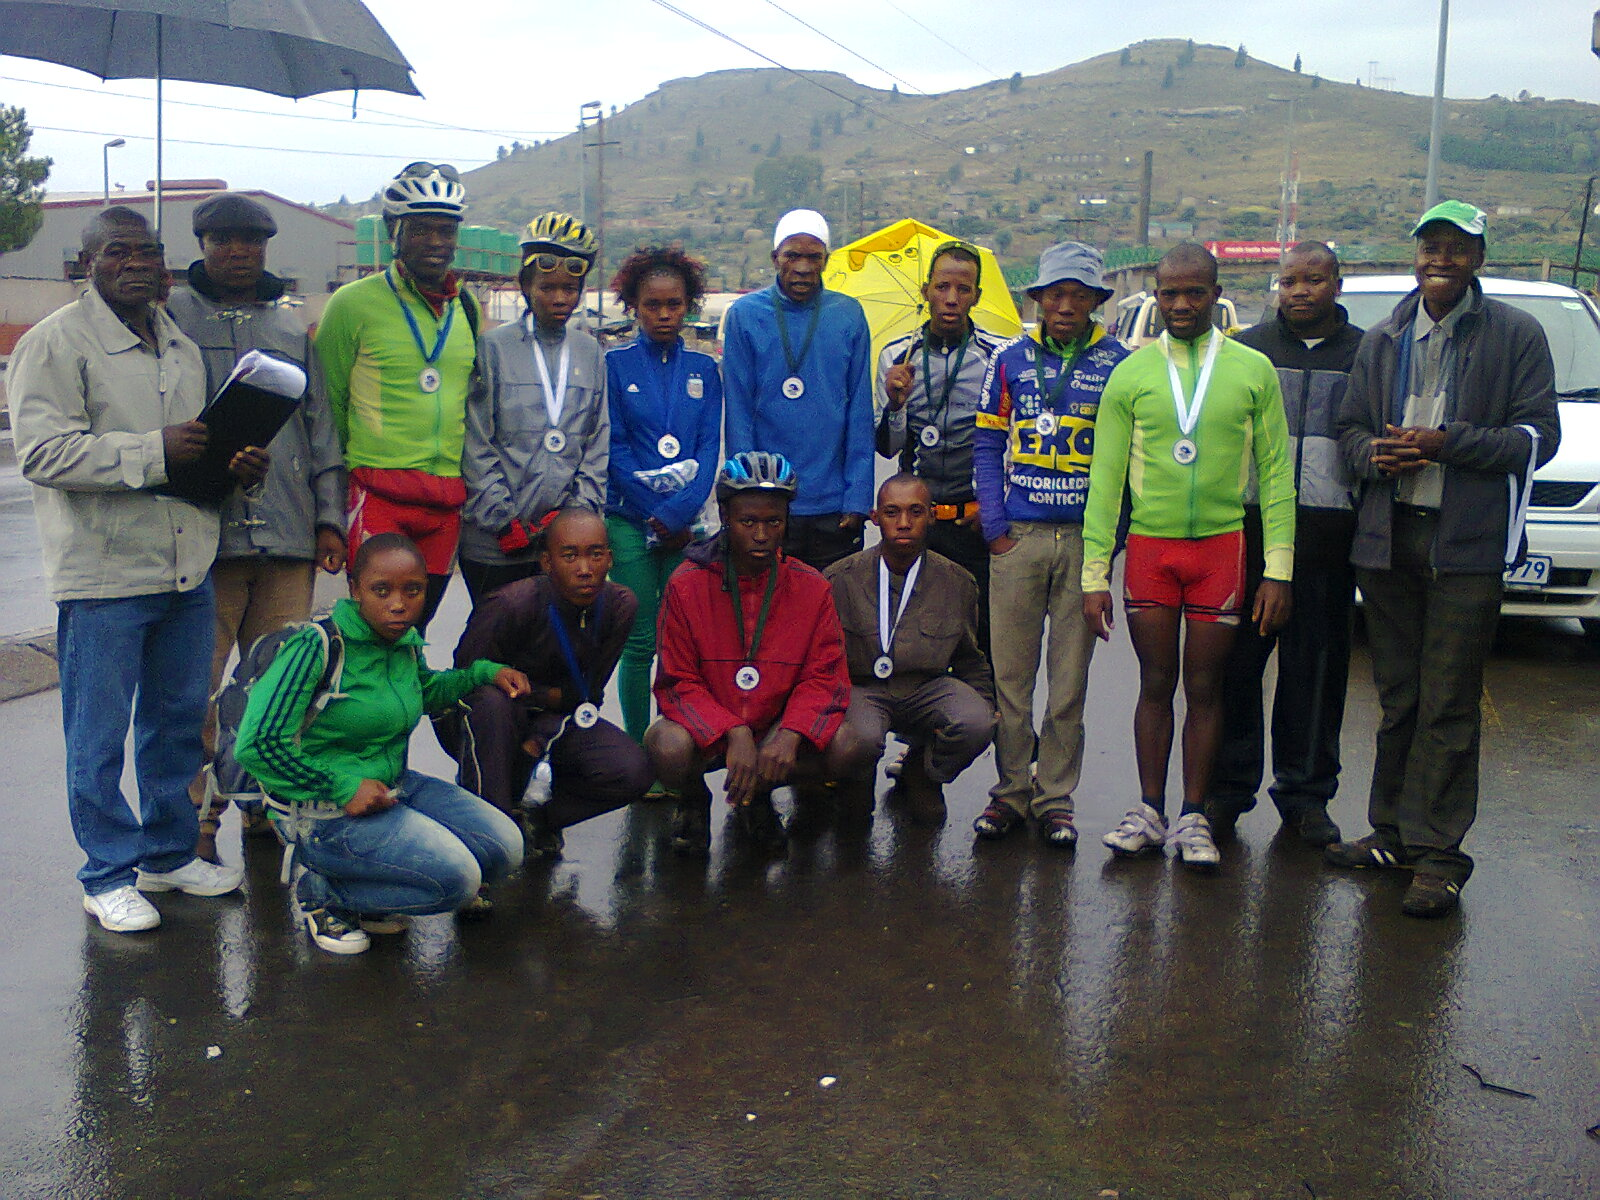 The medalists and officials.